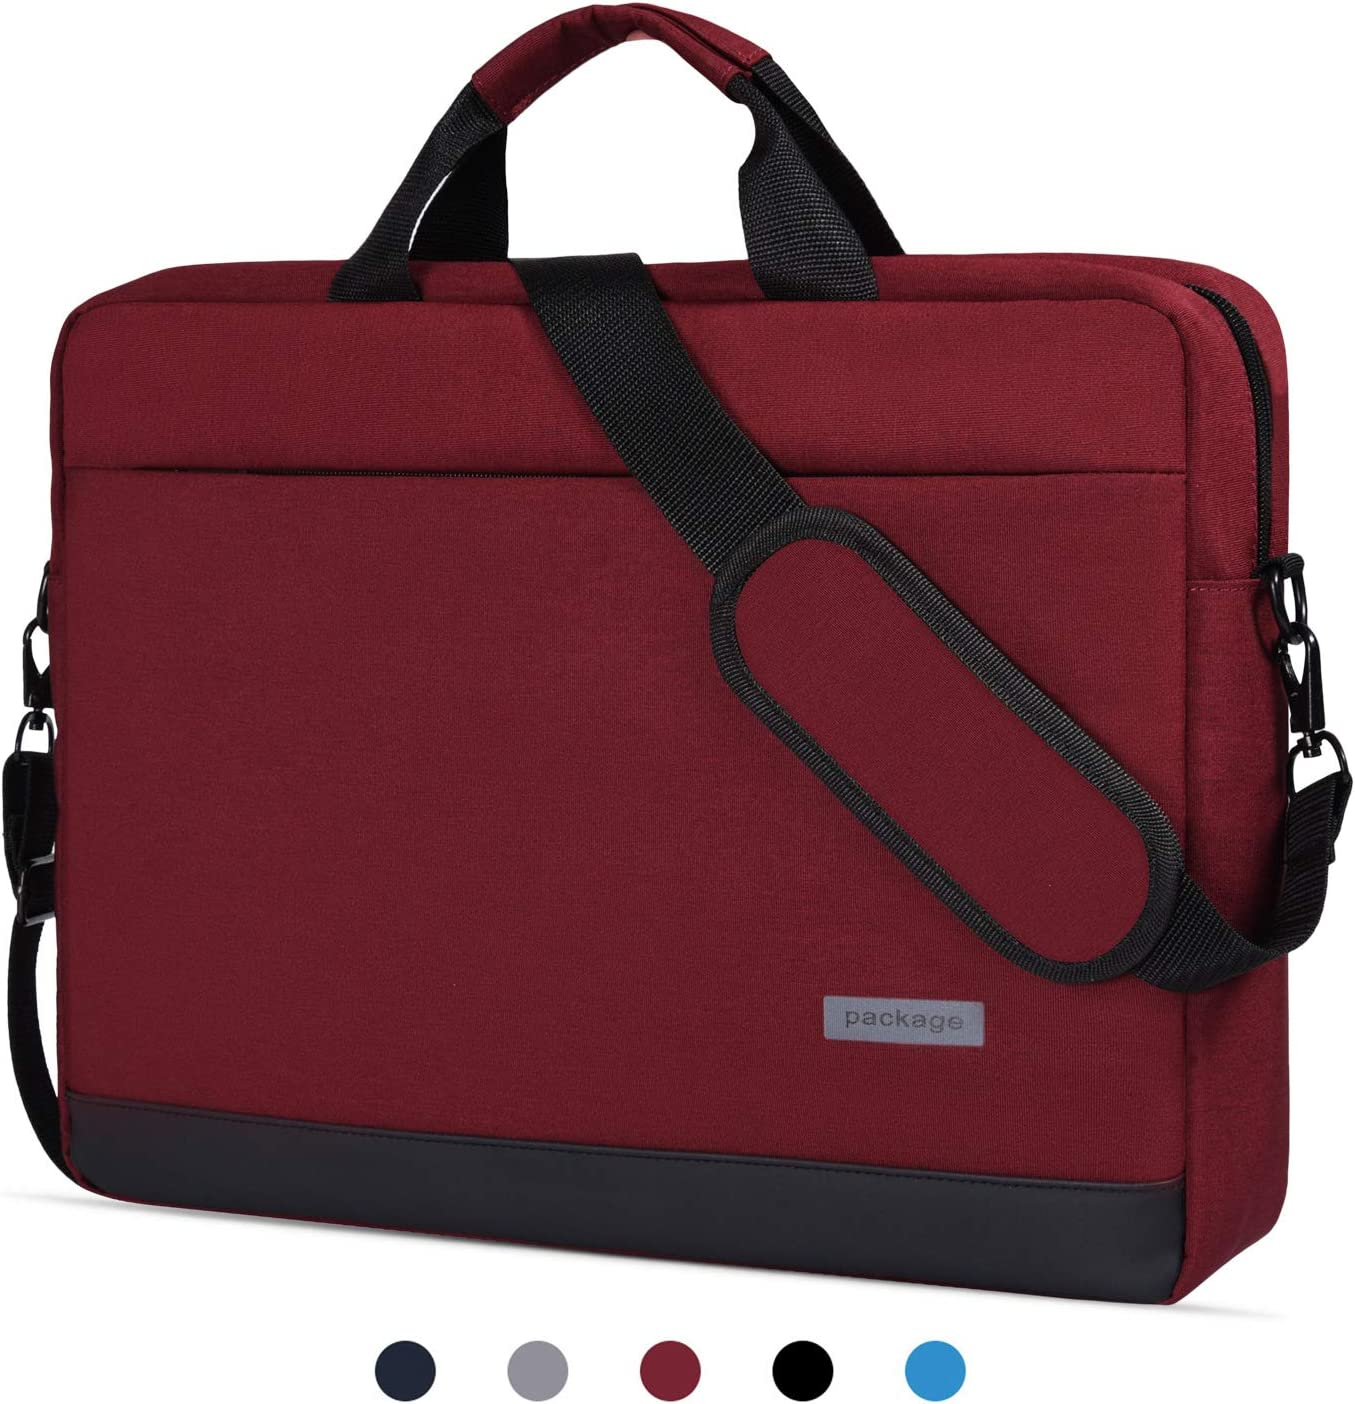 "14-15 Inch Laptop Sleeve Case Messenger Bag Waterproof Shockproof Shoulder Bag Compatible with Acer Chromebook 14,LG Gram 14"", HP Stream 14, 14"" Samsung Dell Toshiba HP ASUS Acer Notebook Bag,Red Wine"